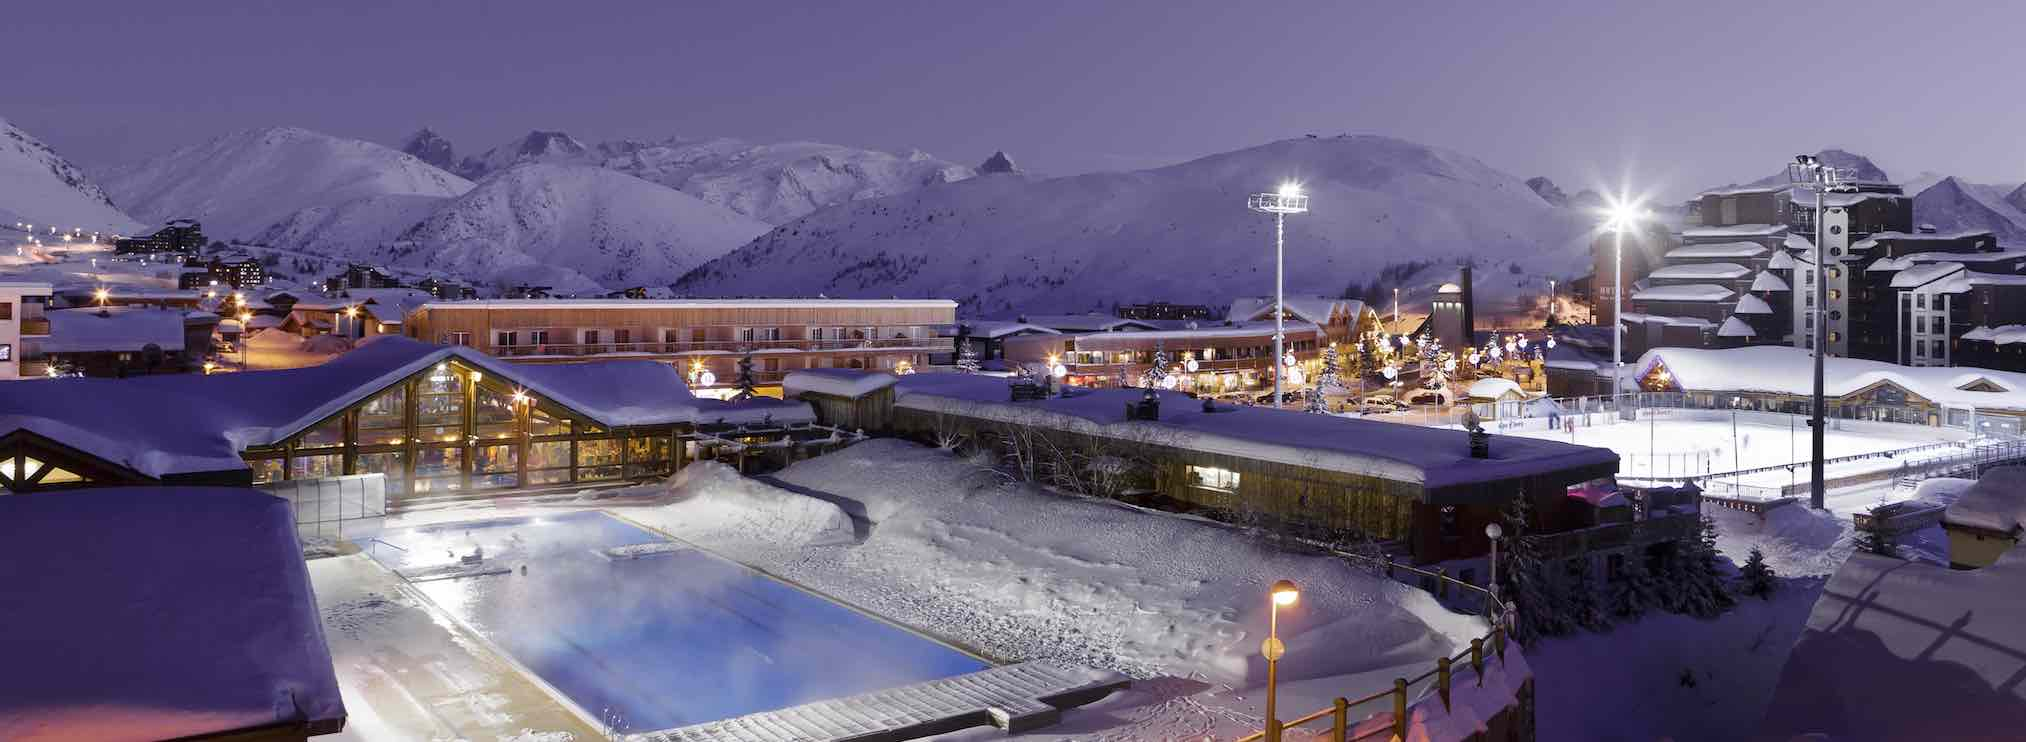 outdoor pool at Alpes d'Huez with views of the surrounding mountains